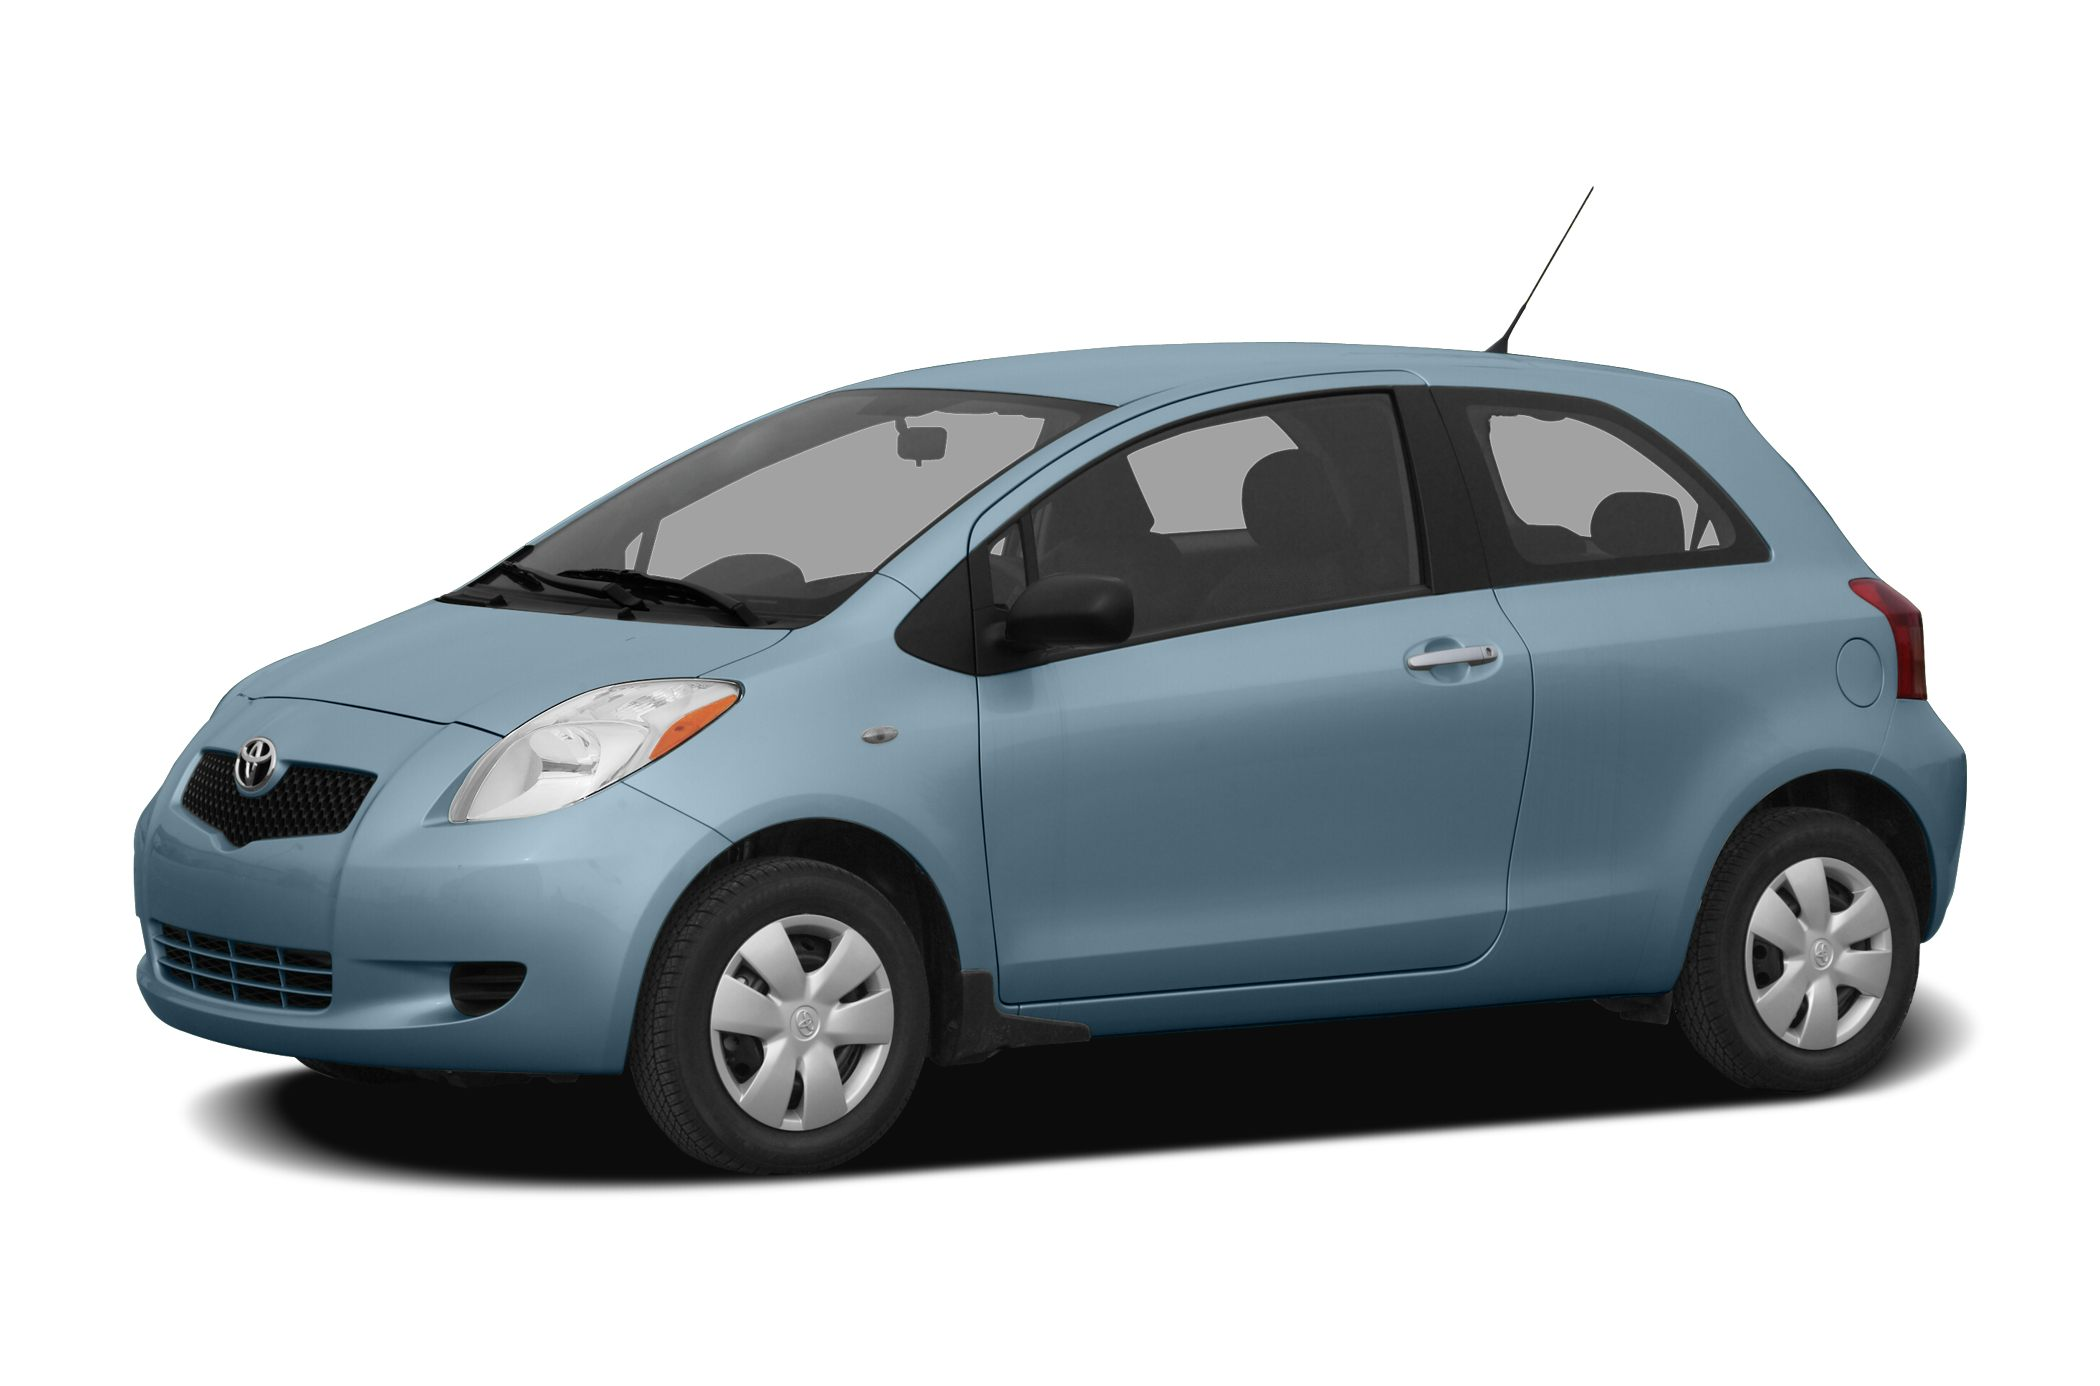 2007 Toyota Yaris Sedan for sale in Hampton for $7,950 with 178,400 miles.